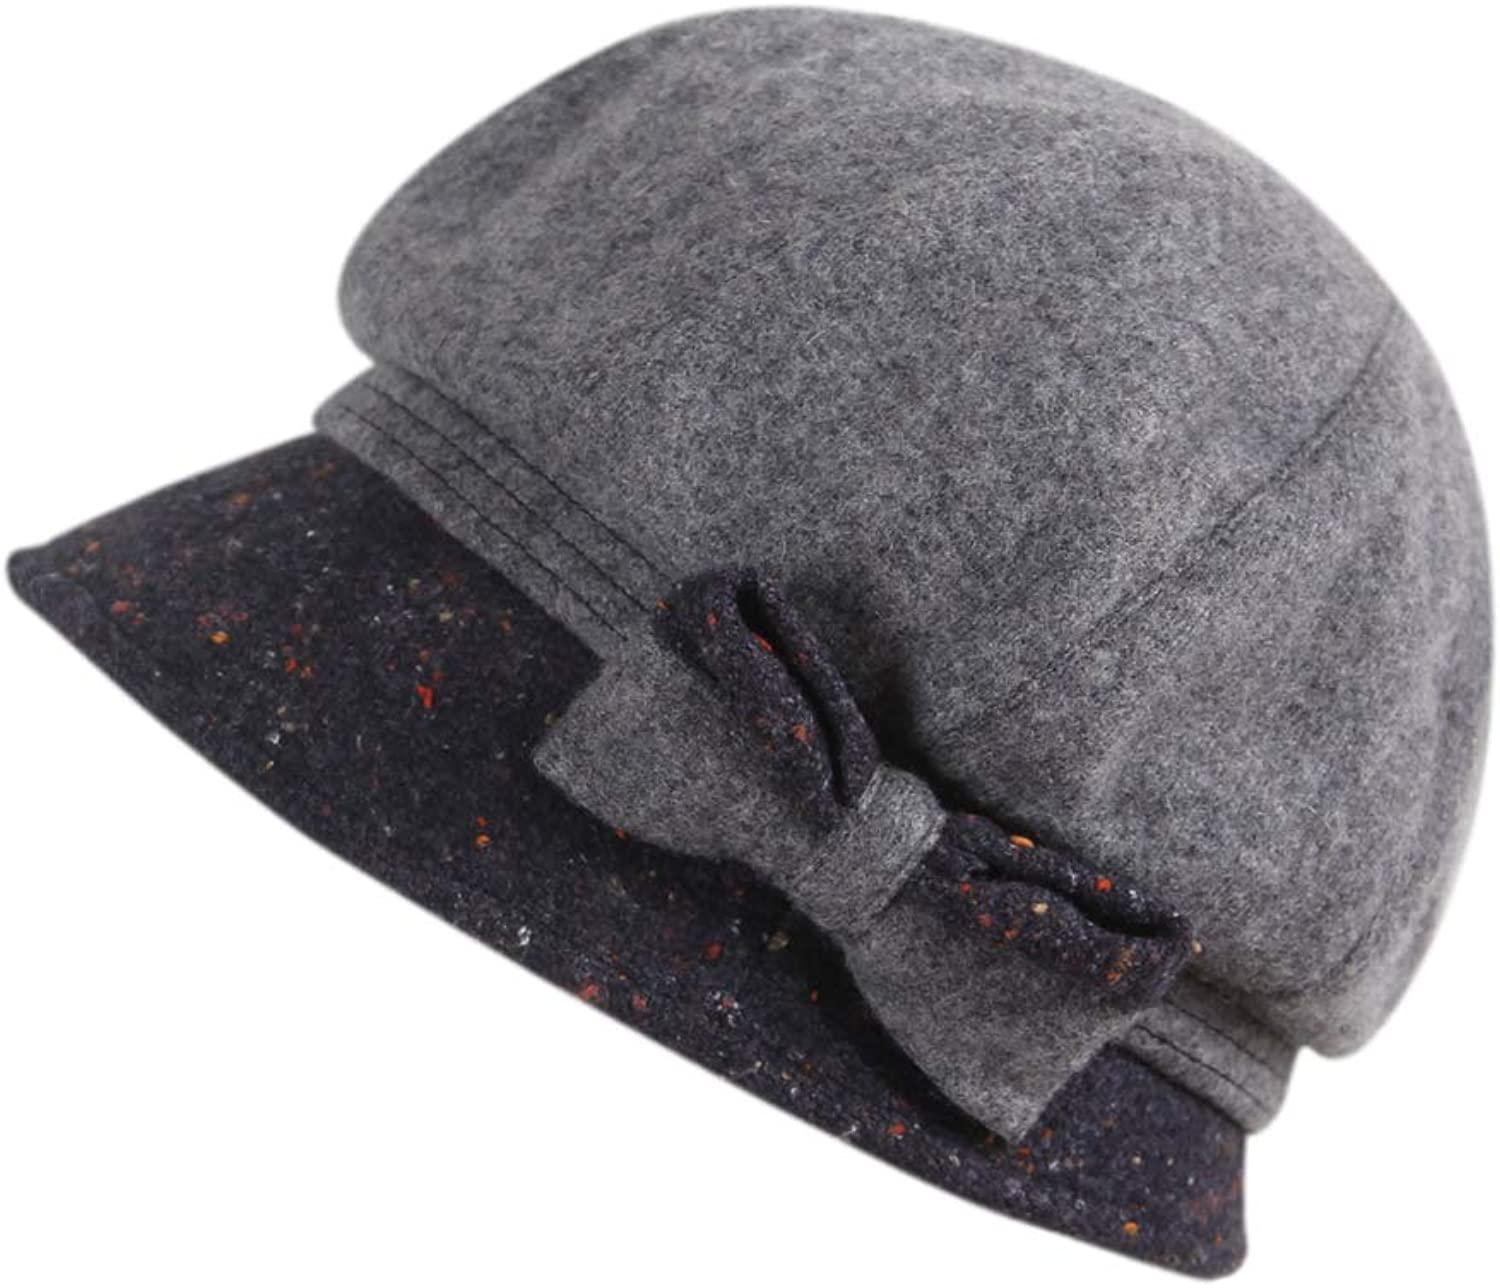 677888 Wool Hat for Women Beret Autumn and Winter Adjustable Fashion Cute Bows England Ear Predectors